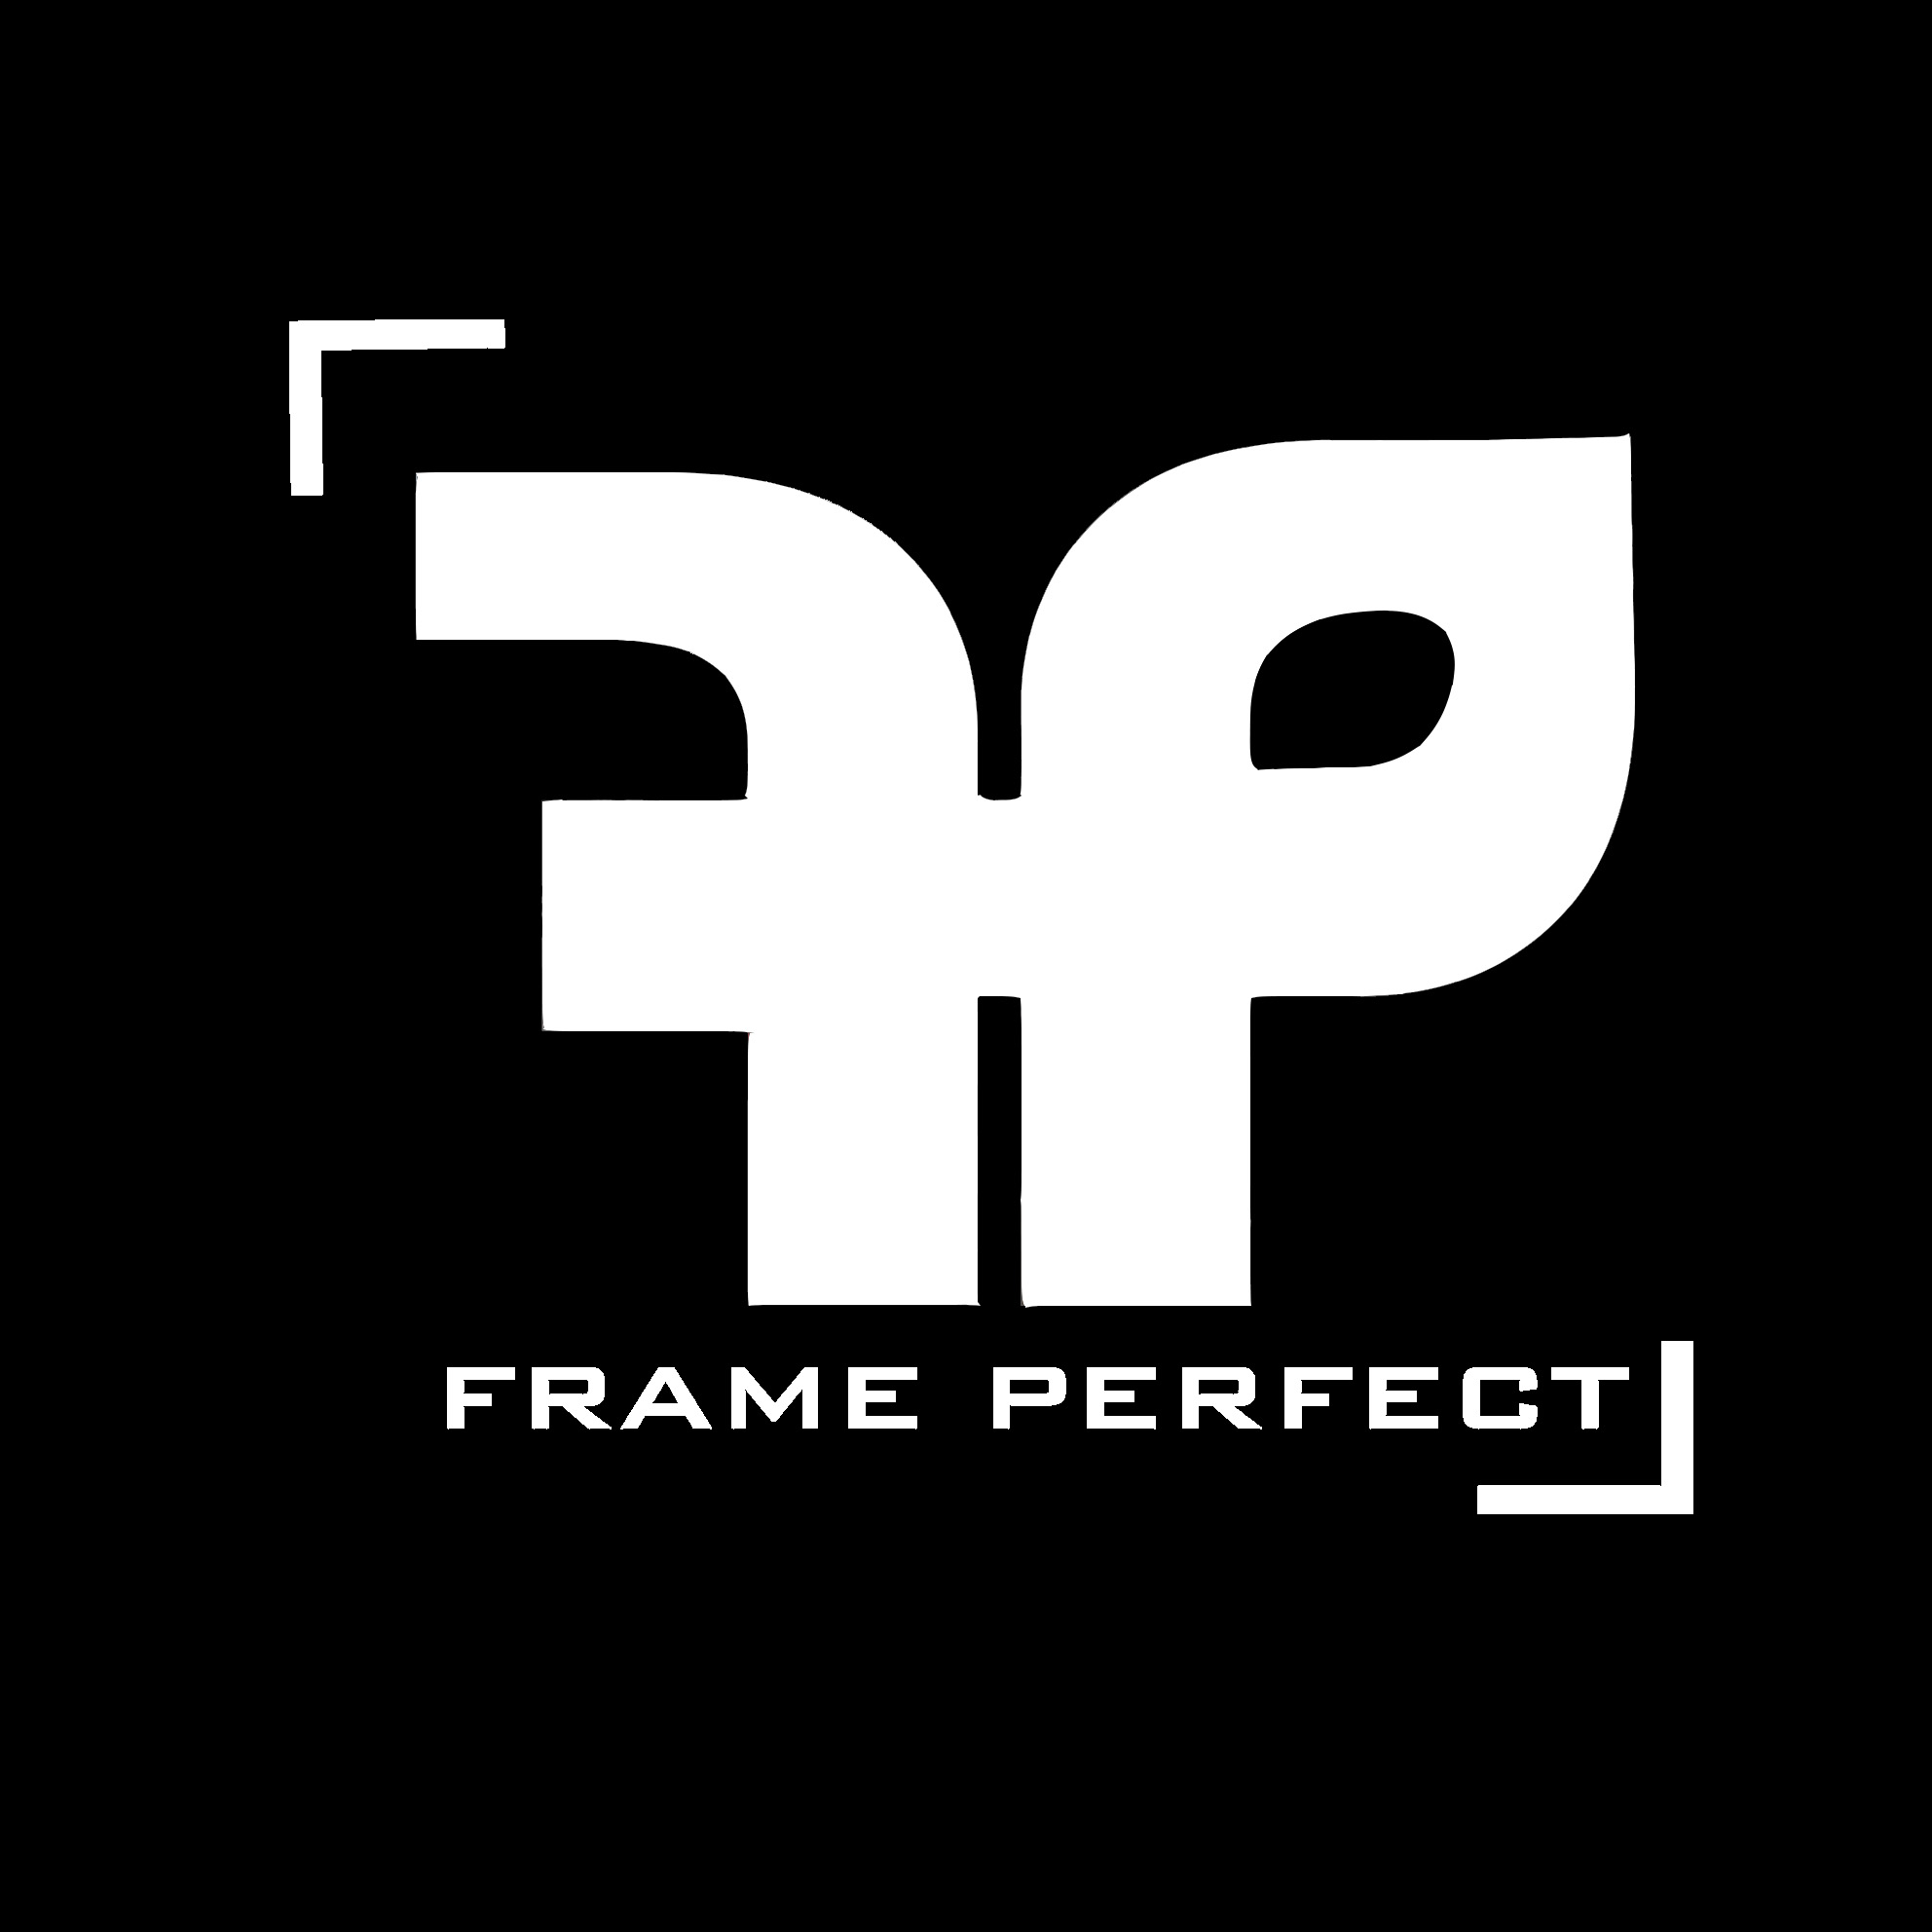 Frame Perfect, The Collective Production Agency